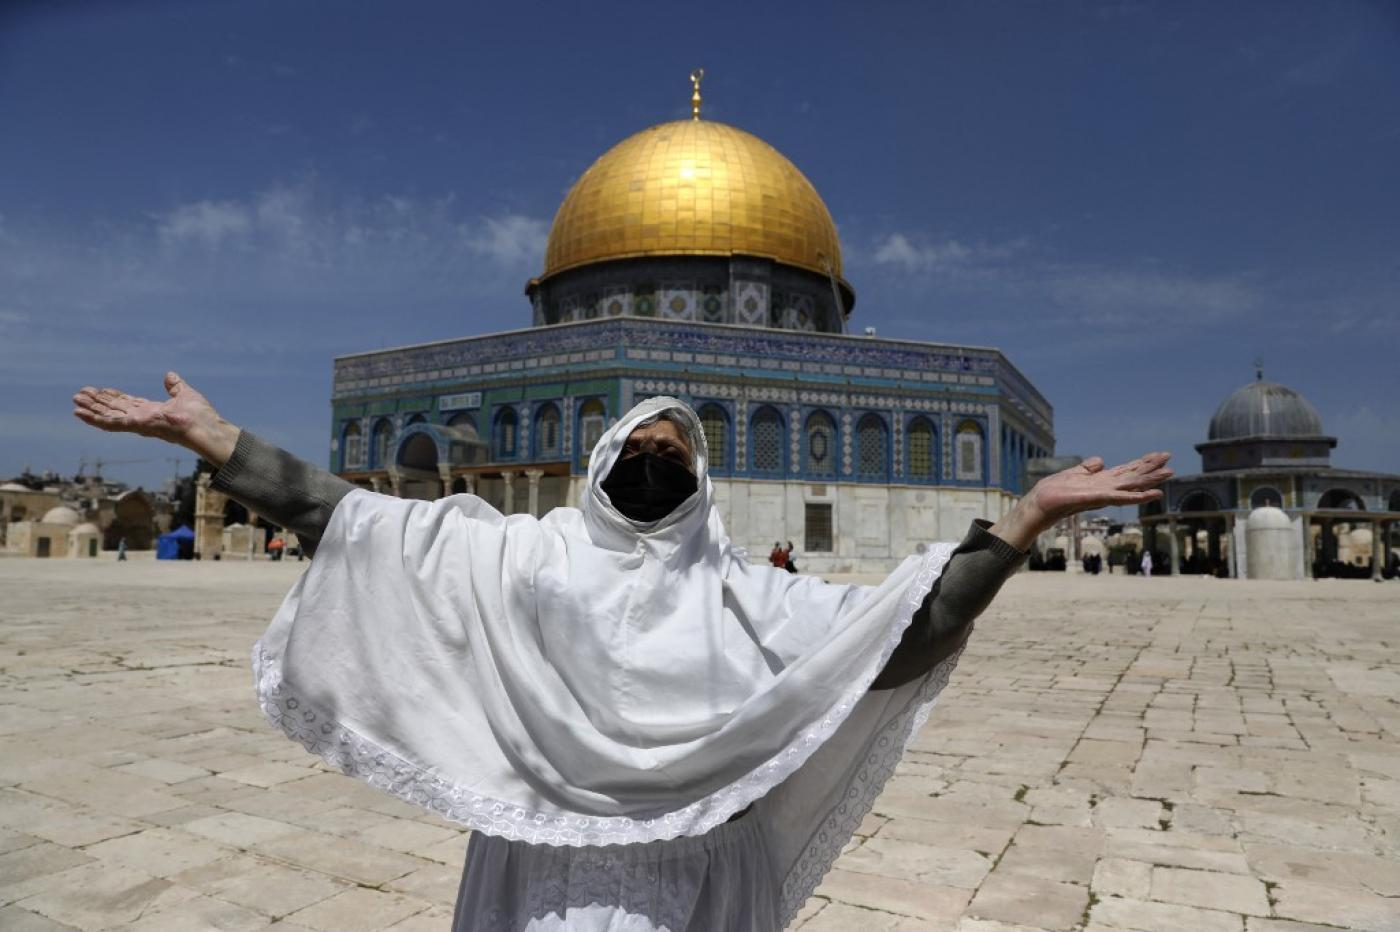 Israel restricts entry to Al-Aqsa Mosque for Palestinians on first Friday  of Ramadan   Middle East Eye